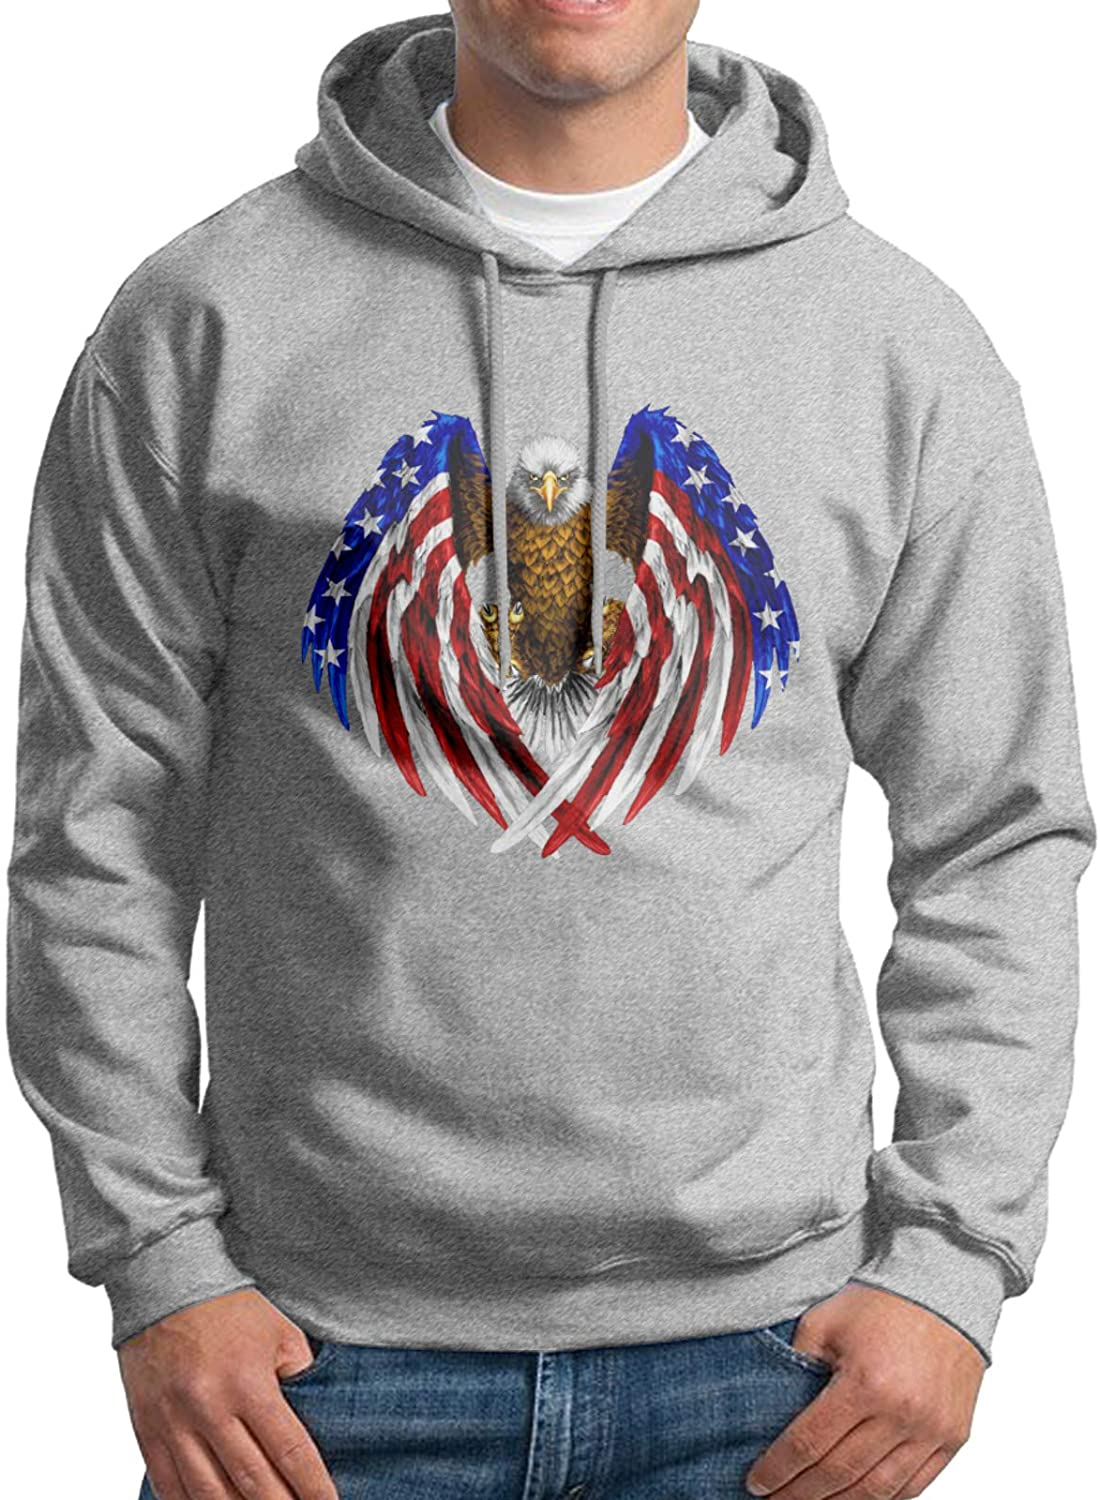 Men's Pullover Hoodie Sweatshirt America USA Flag with Eagle Up to Size 3XL-Black